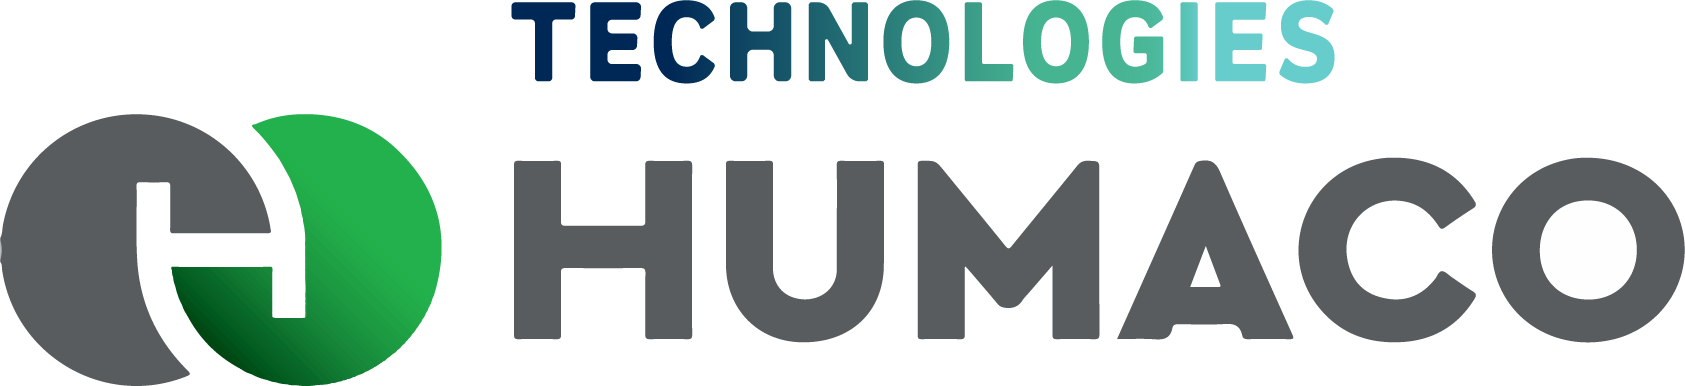 Logo Humaco Technologie spécialiste en innovation en construction